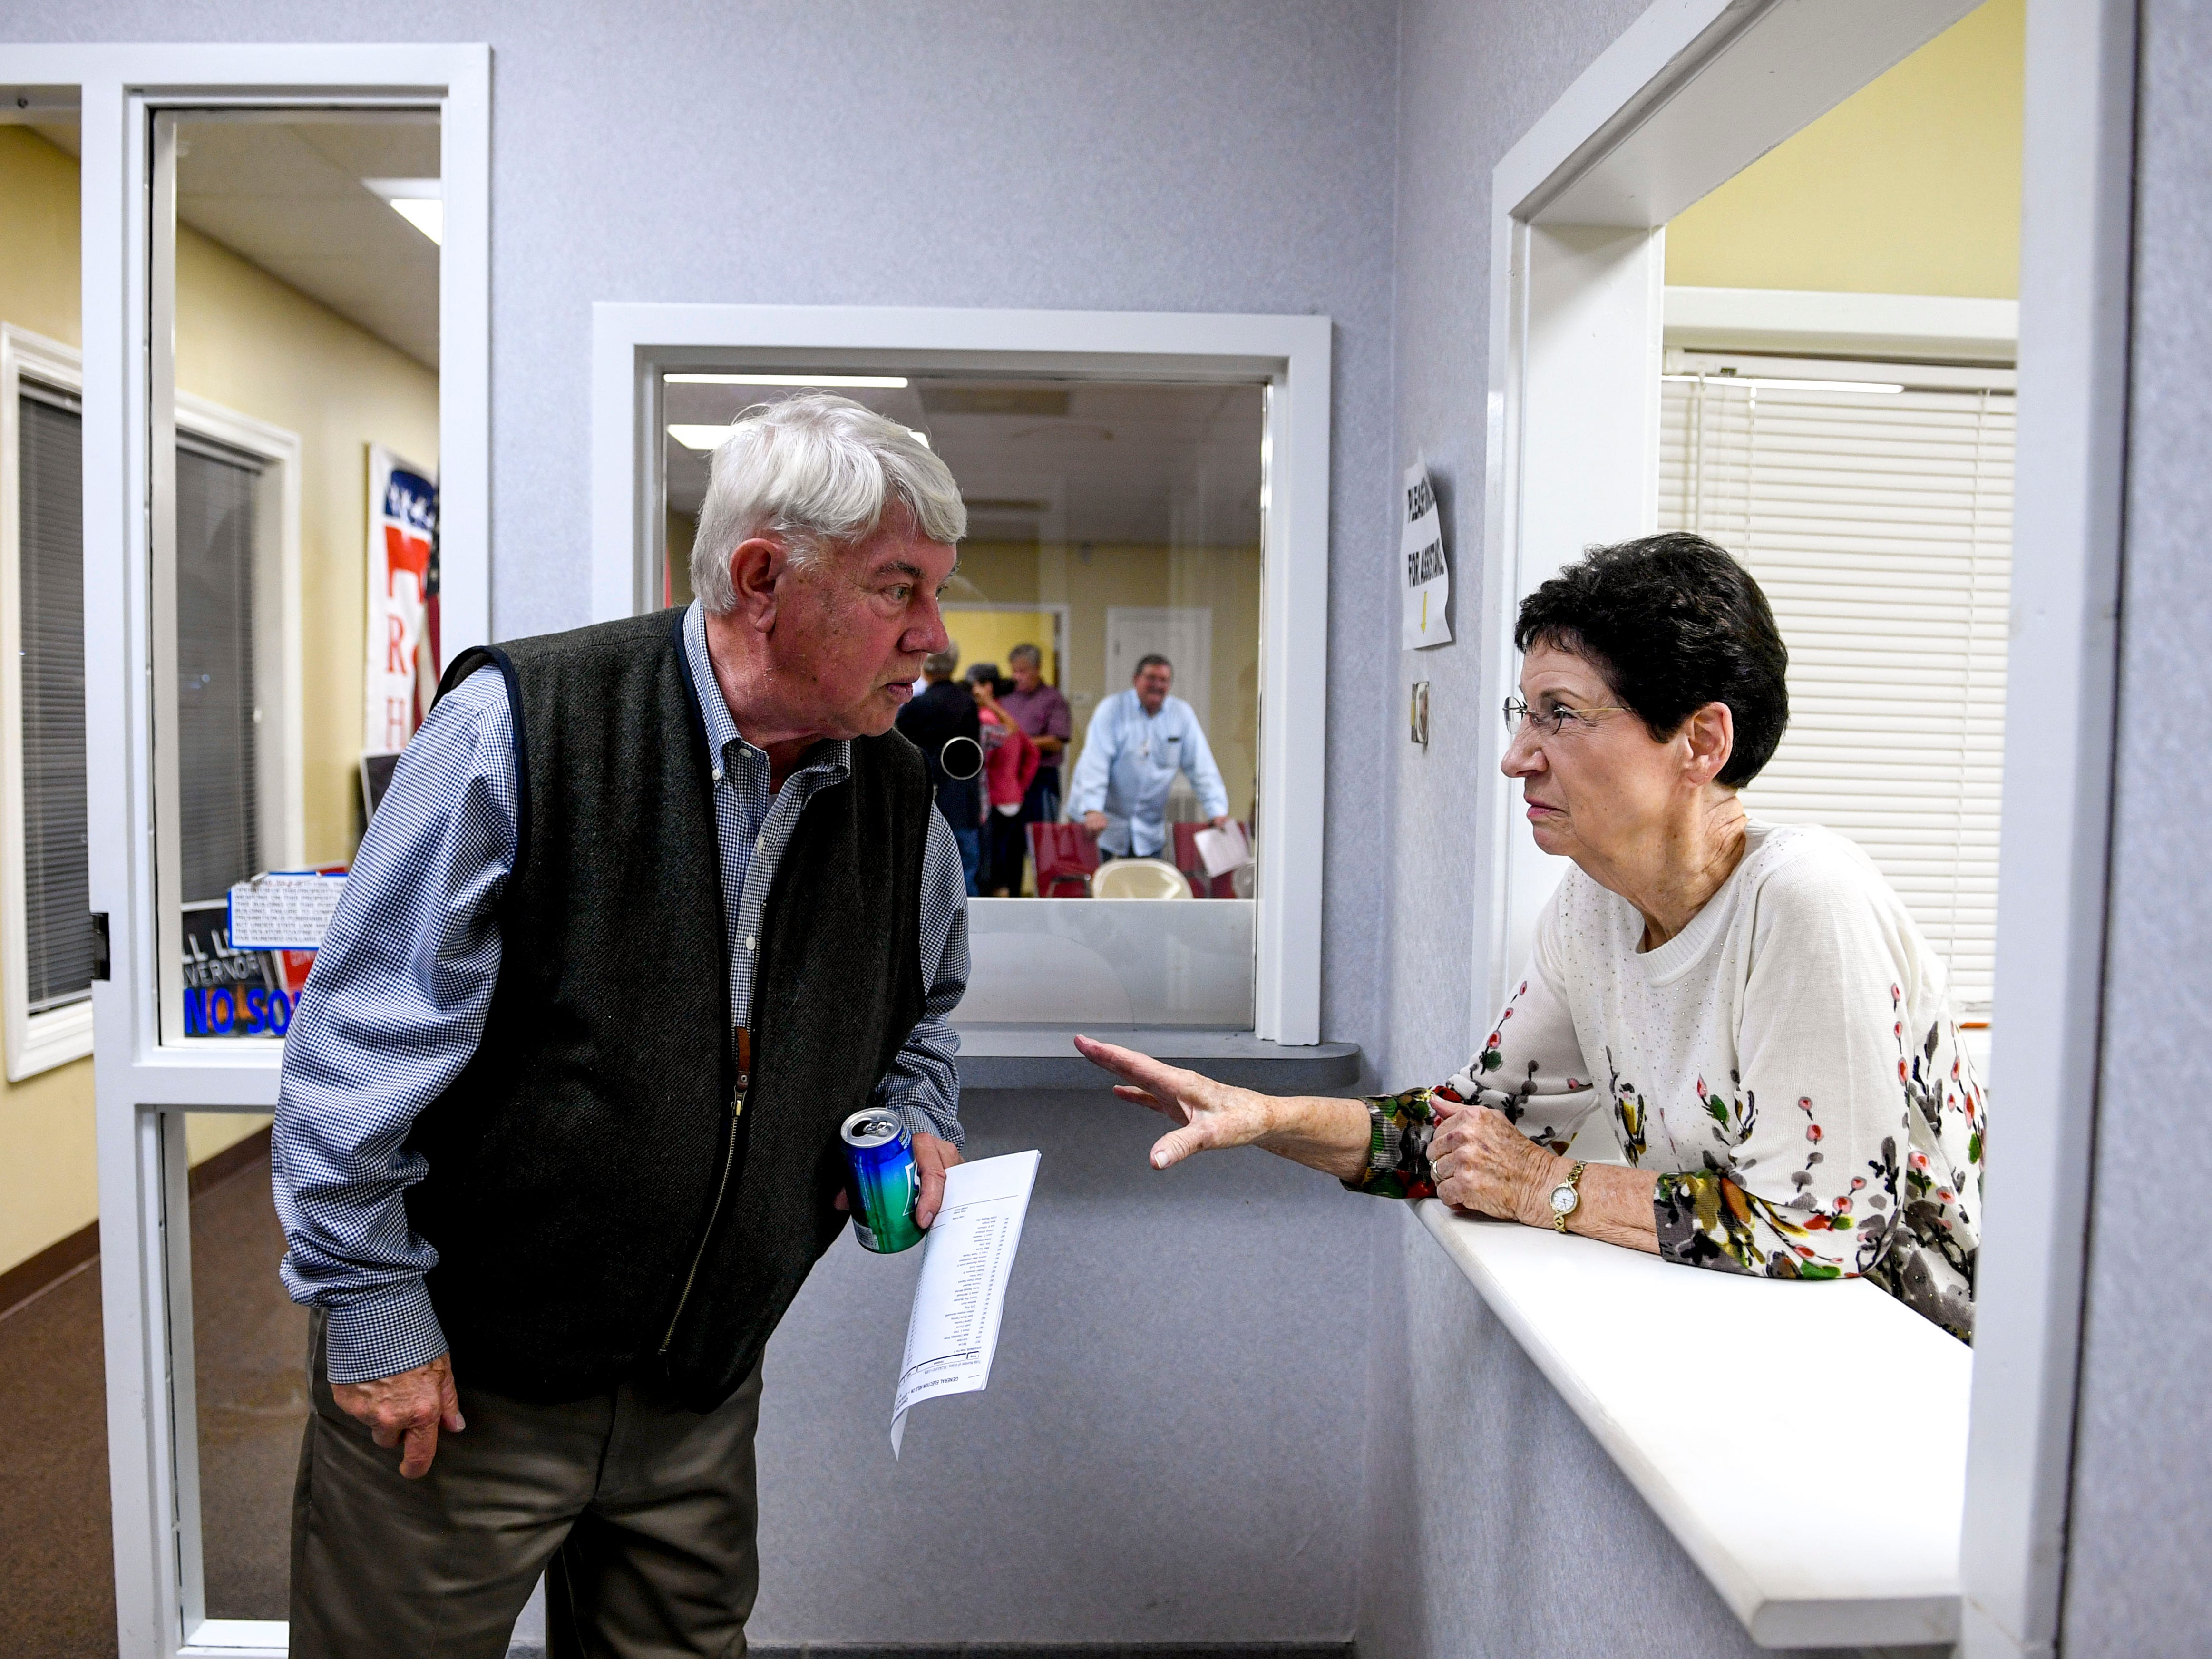 Judy Beeson, right, and Jimmy Eldridge, left, speak with one another during an election night watch party at Madison County Republican Headquarters in Jackson, Tenn., on Tuesday, Nov. 6, 2018.